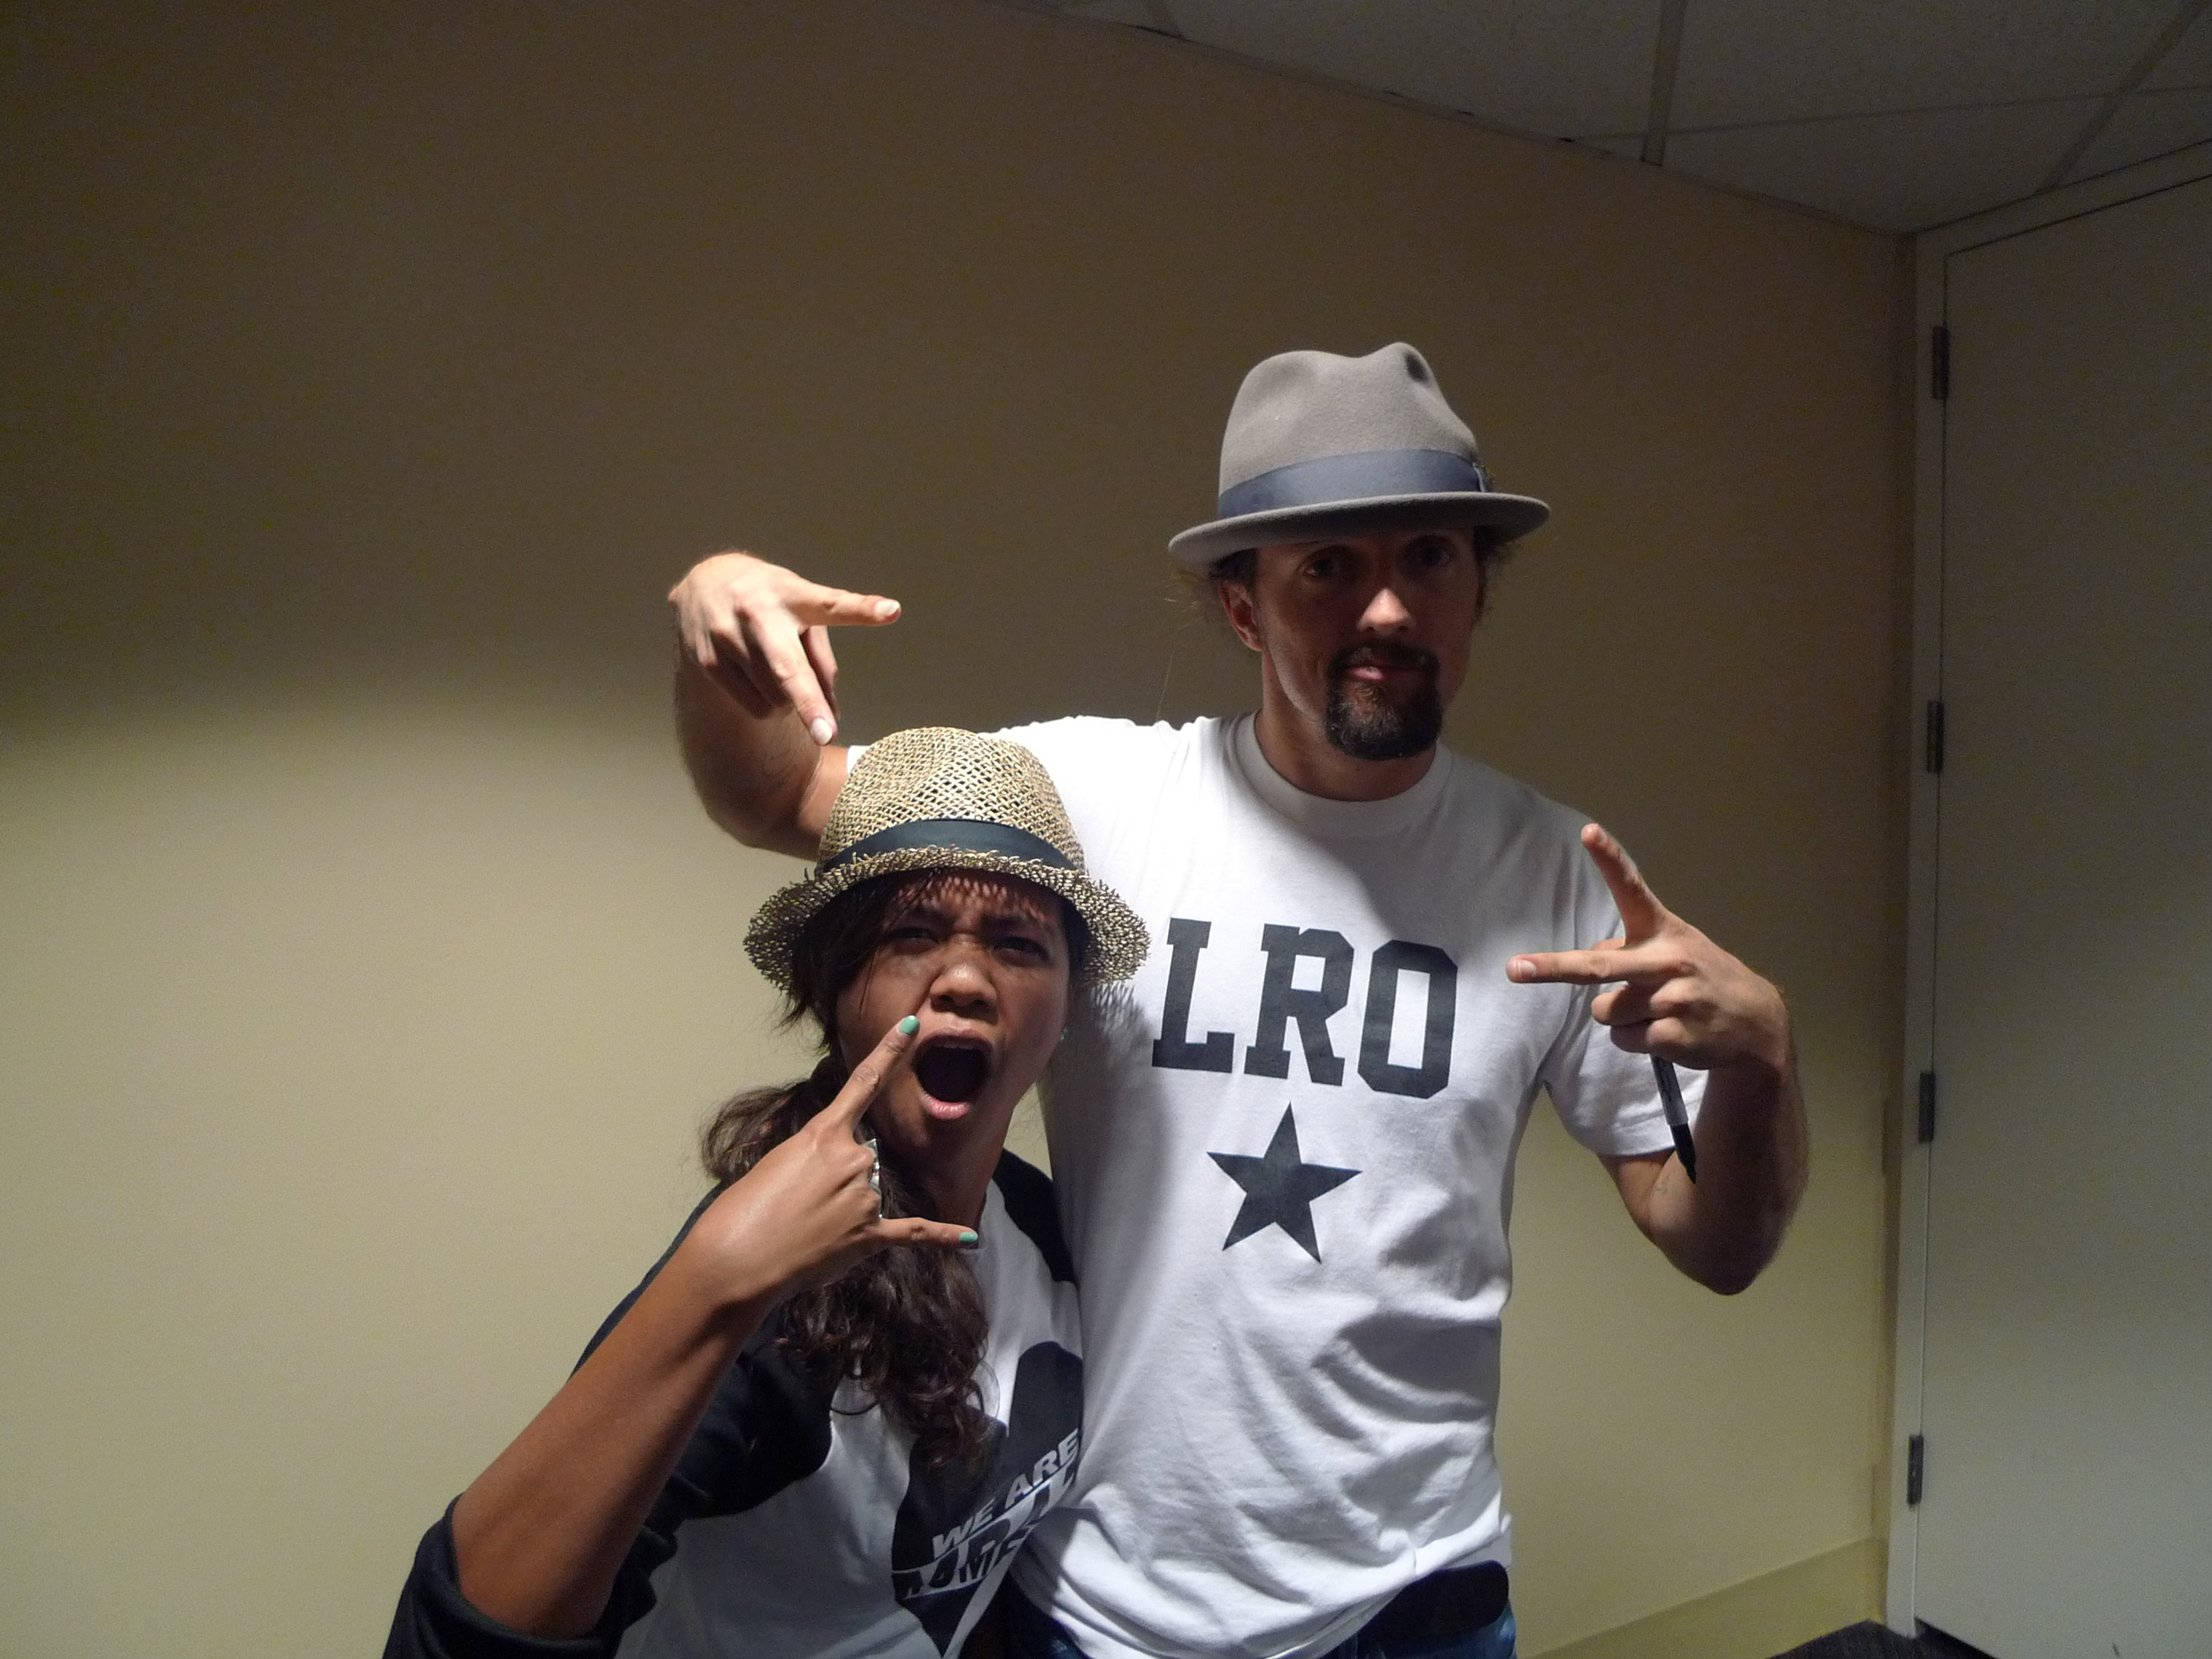 Me and my bro, Jason Mraz (September 2012)